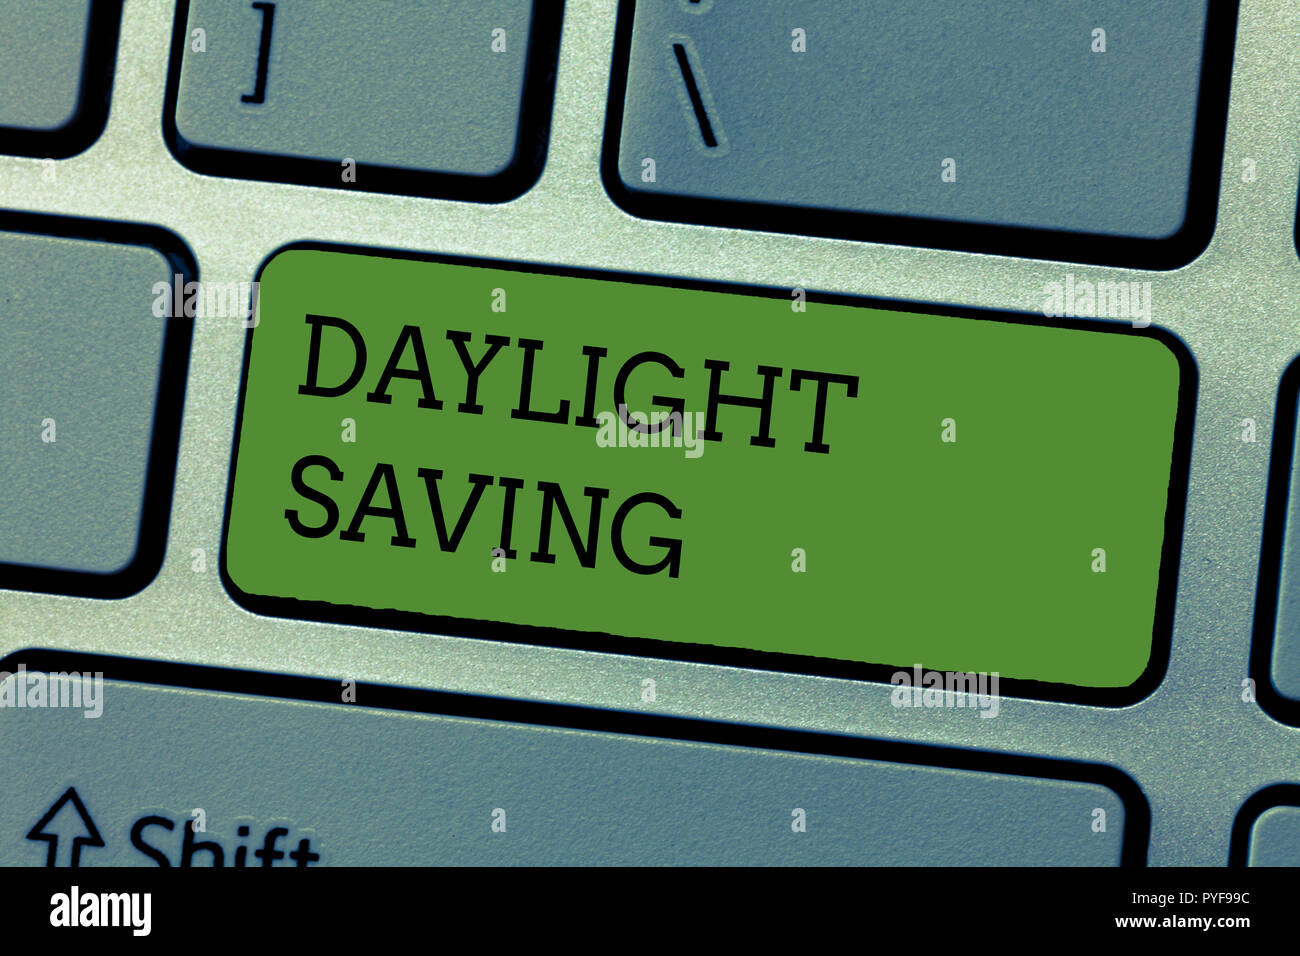 Writing note showing Daylight Saving. Business photo showcasing Storage technologies that can be used to protect data. - Stock Image